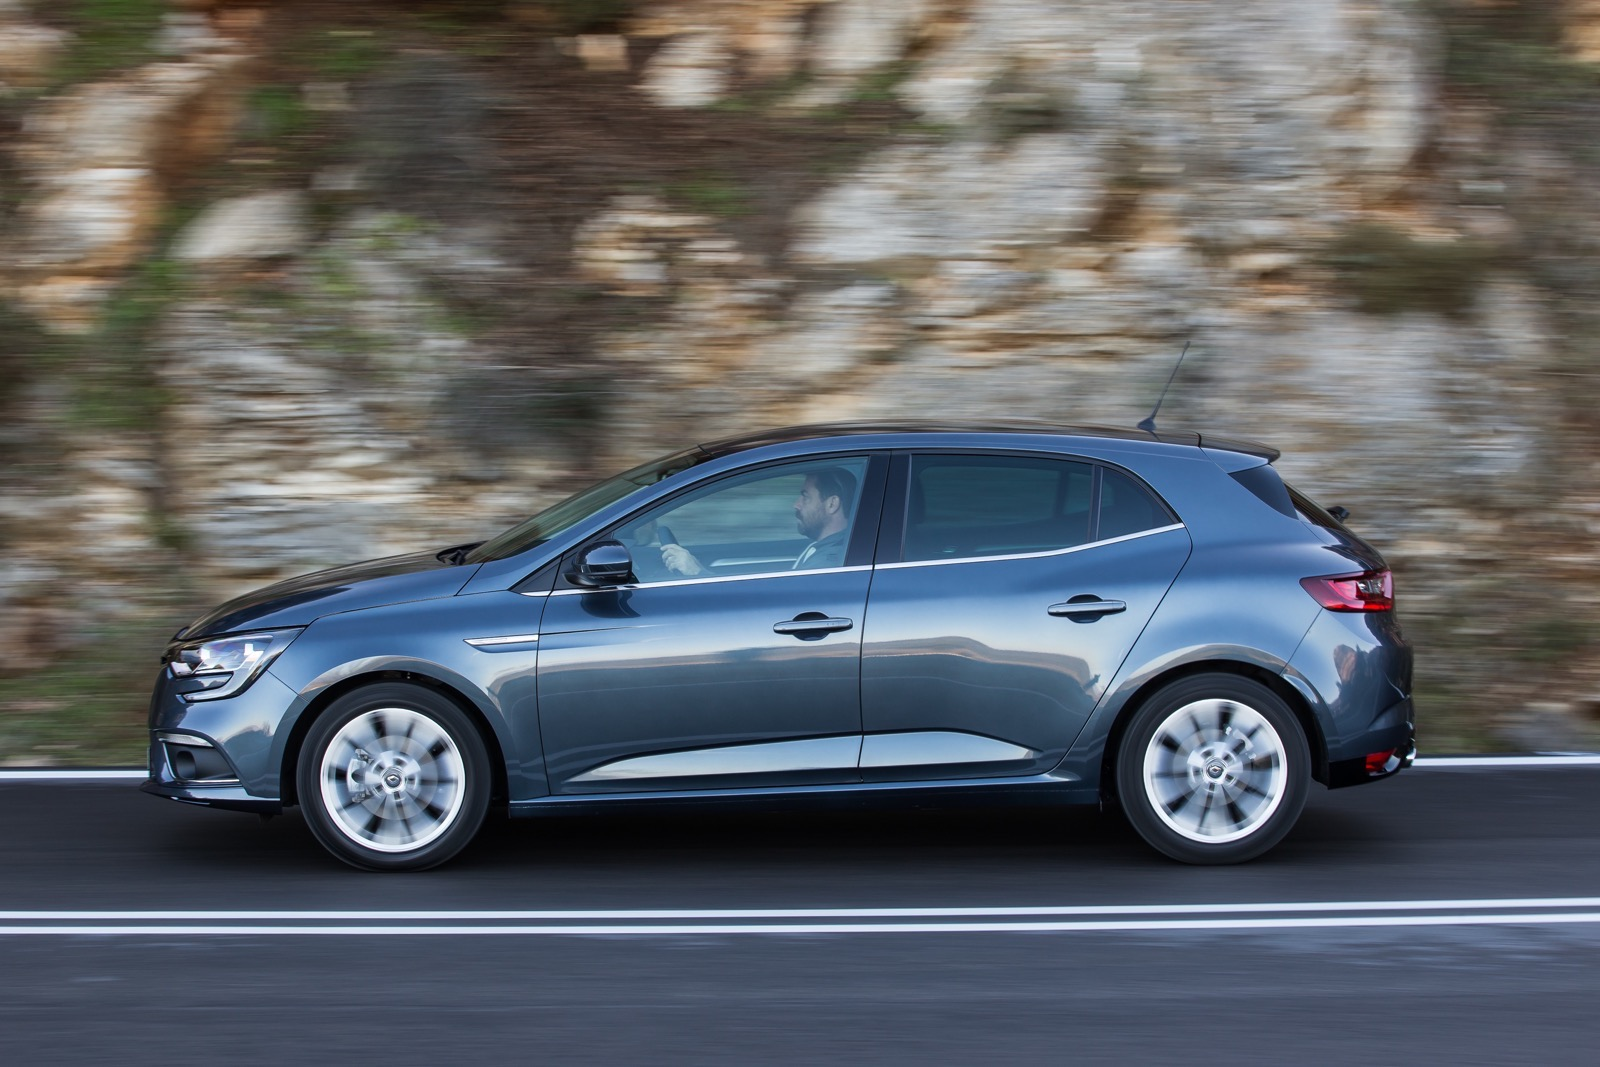 First_Drive_Renault_Megane_84